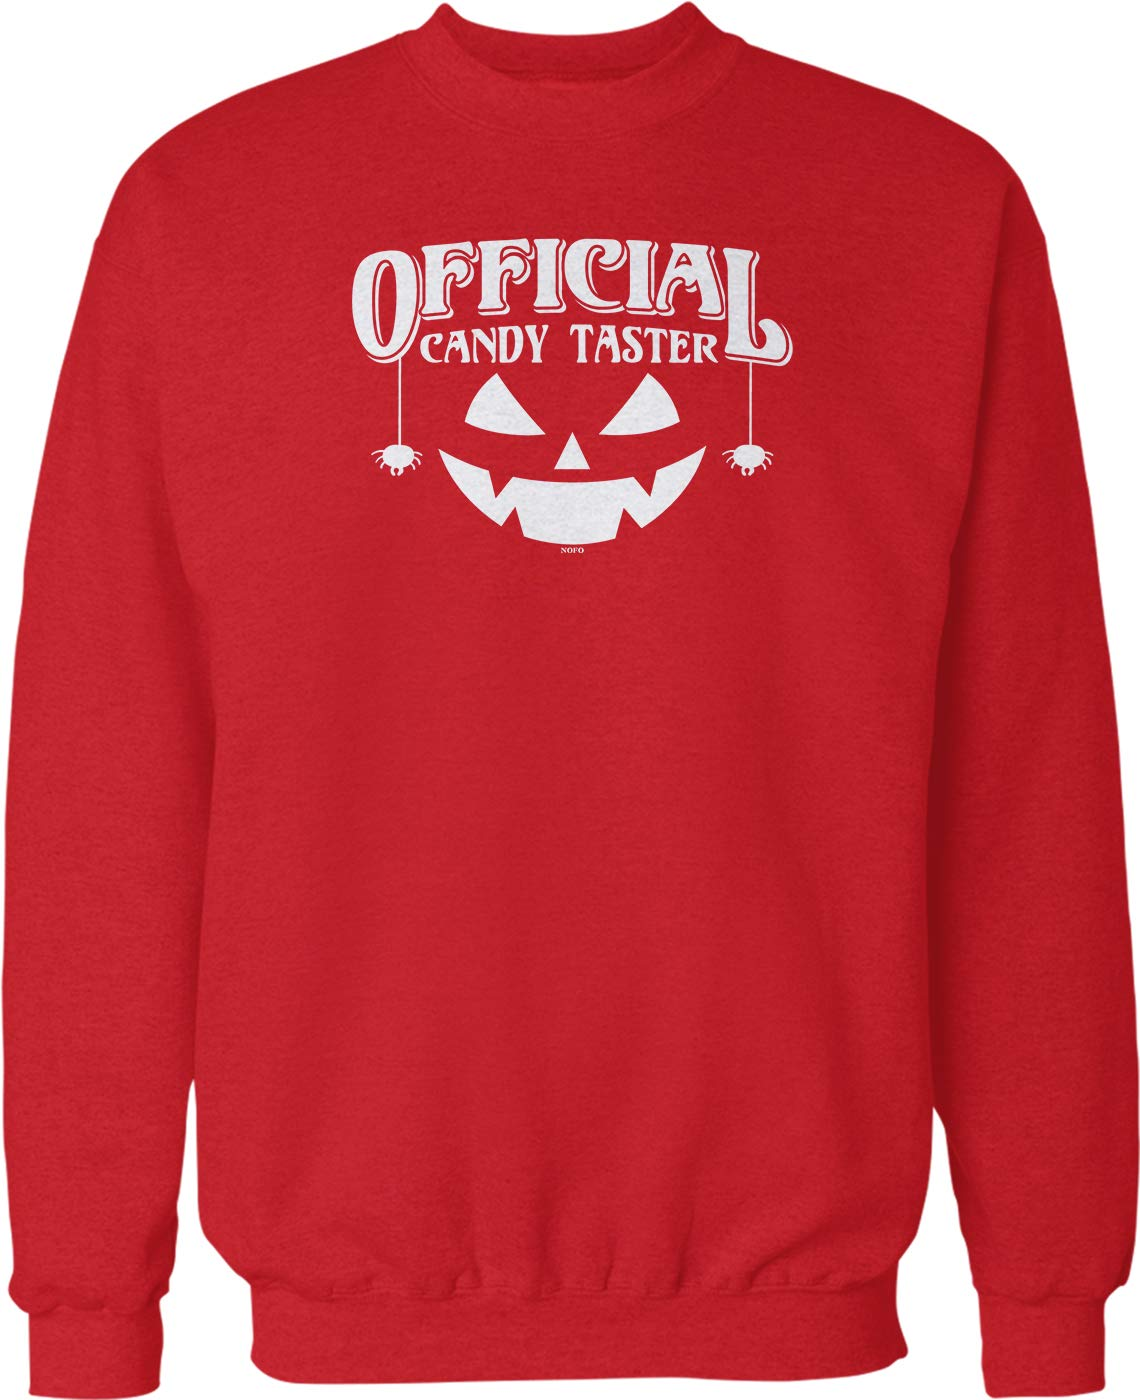 Candy Taster Crew Neck Shirts